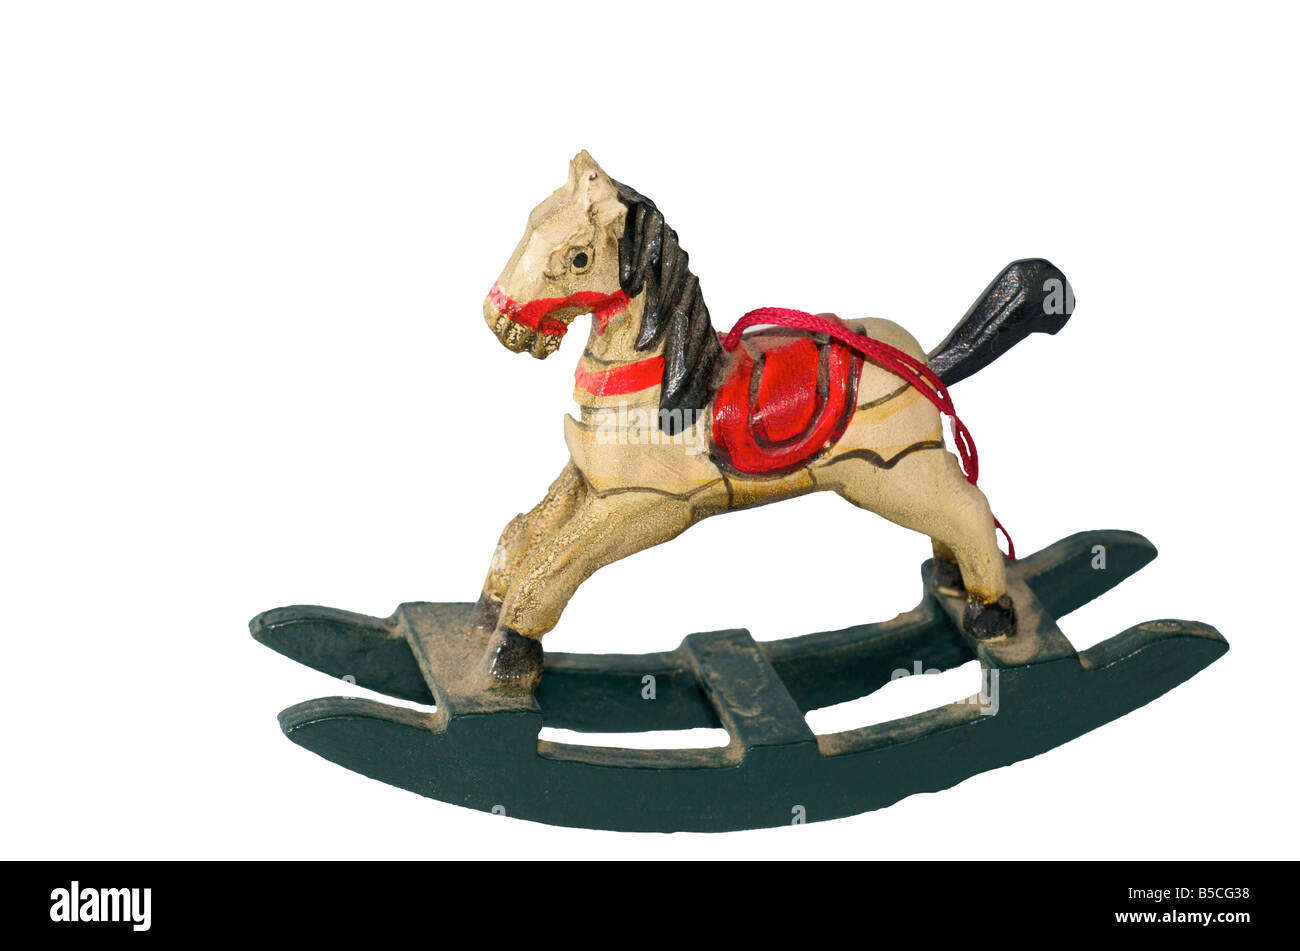 A Small Wooden Rocking Horse Is A Christmas Ornament Stock Photo Alamy